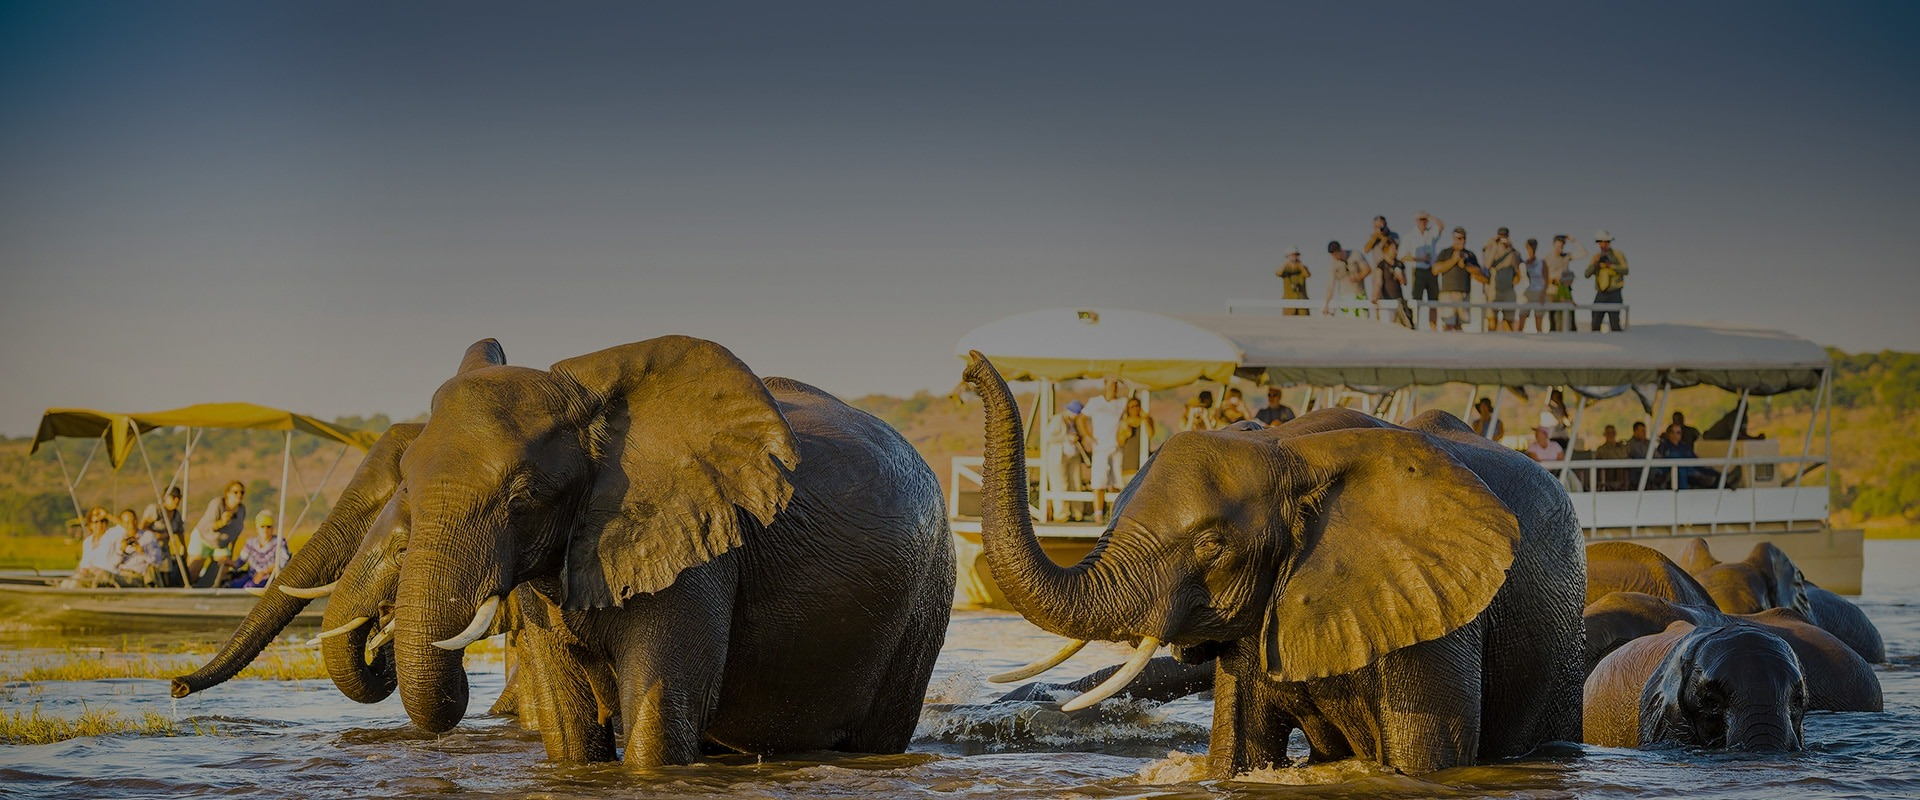 Best African Safari Destinations